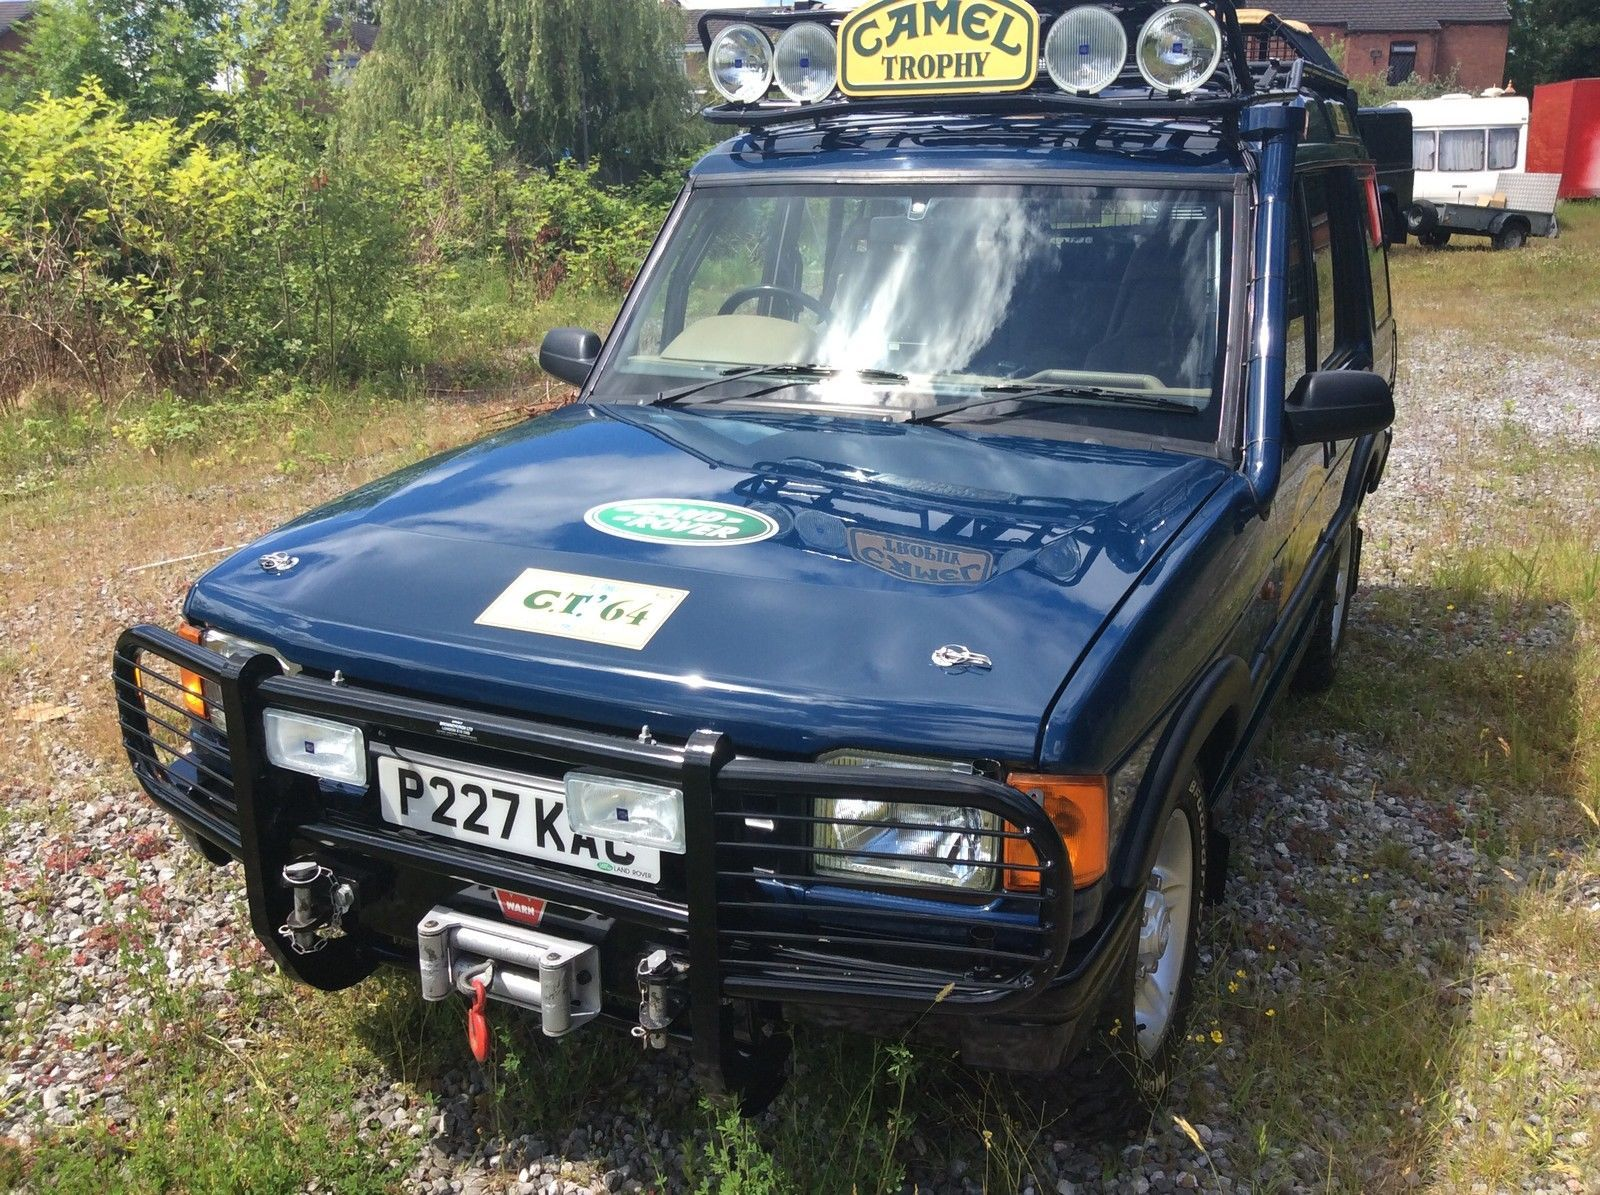 96 genuine camel trophy landrover discovery expedition vehicle winch roll cage for sale in uk